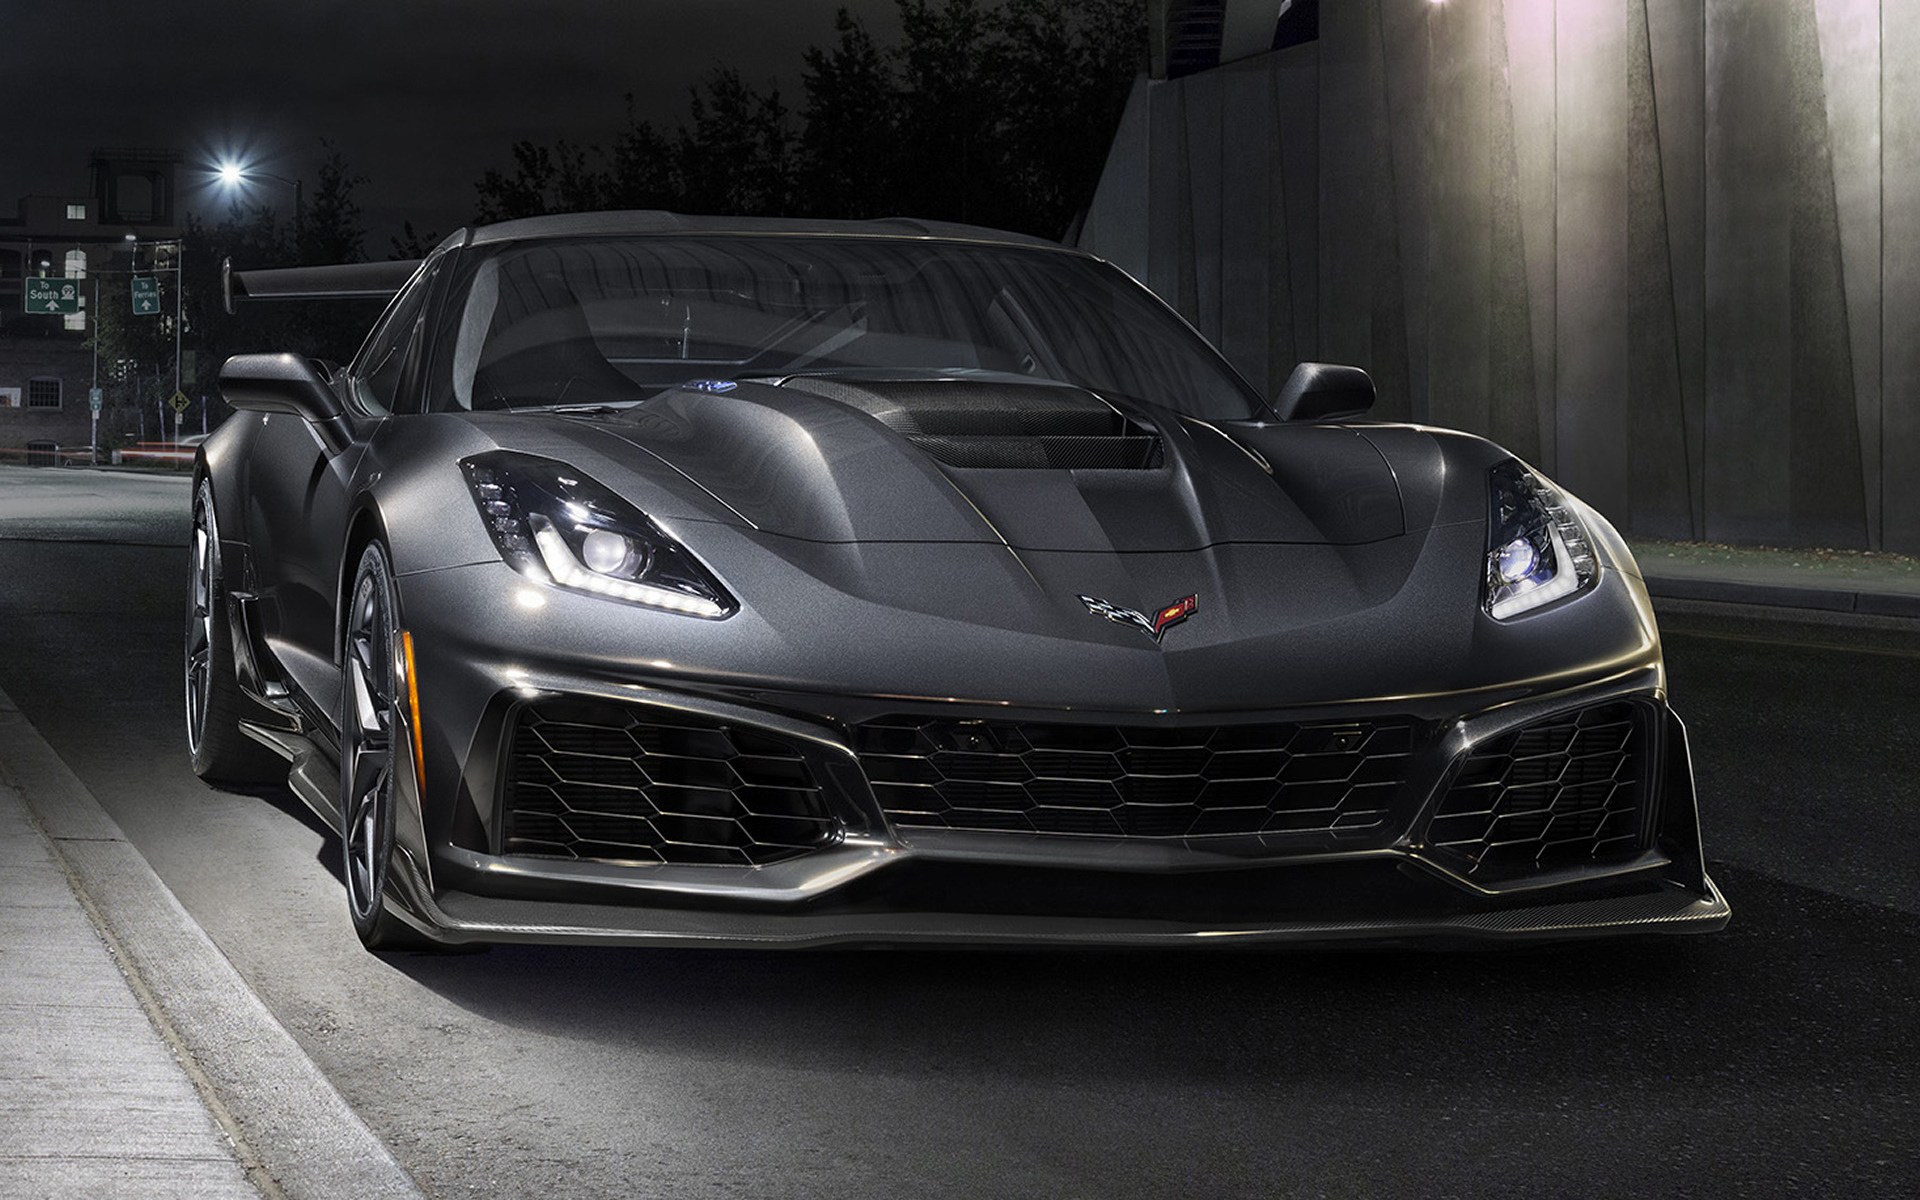 Wallpaper Amazing Convertible Cars 2018 Chevrolet Corvette Zr1 Wallpapers And Hd Images